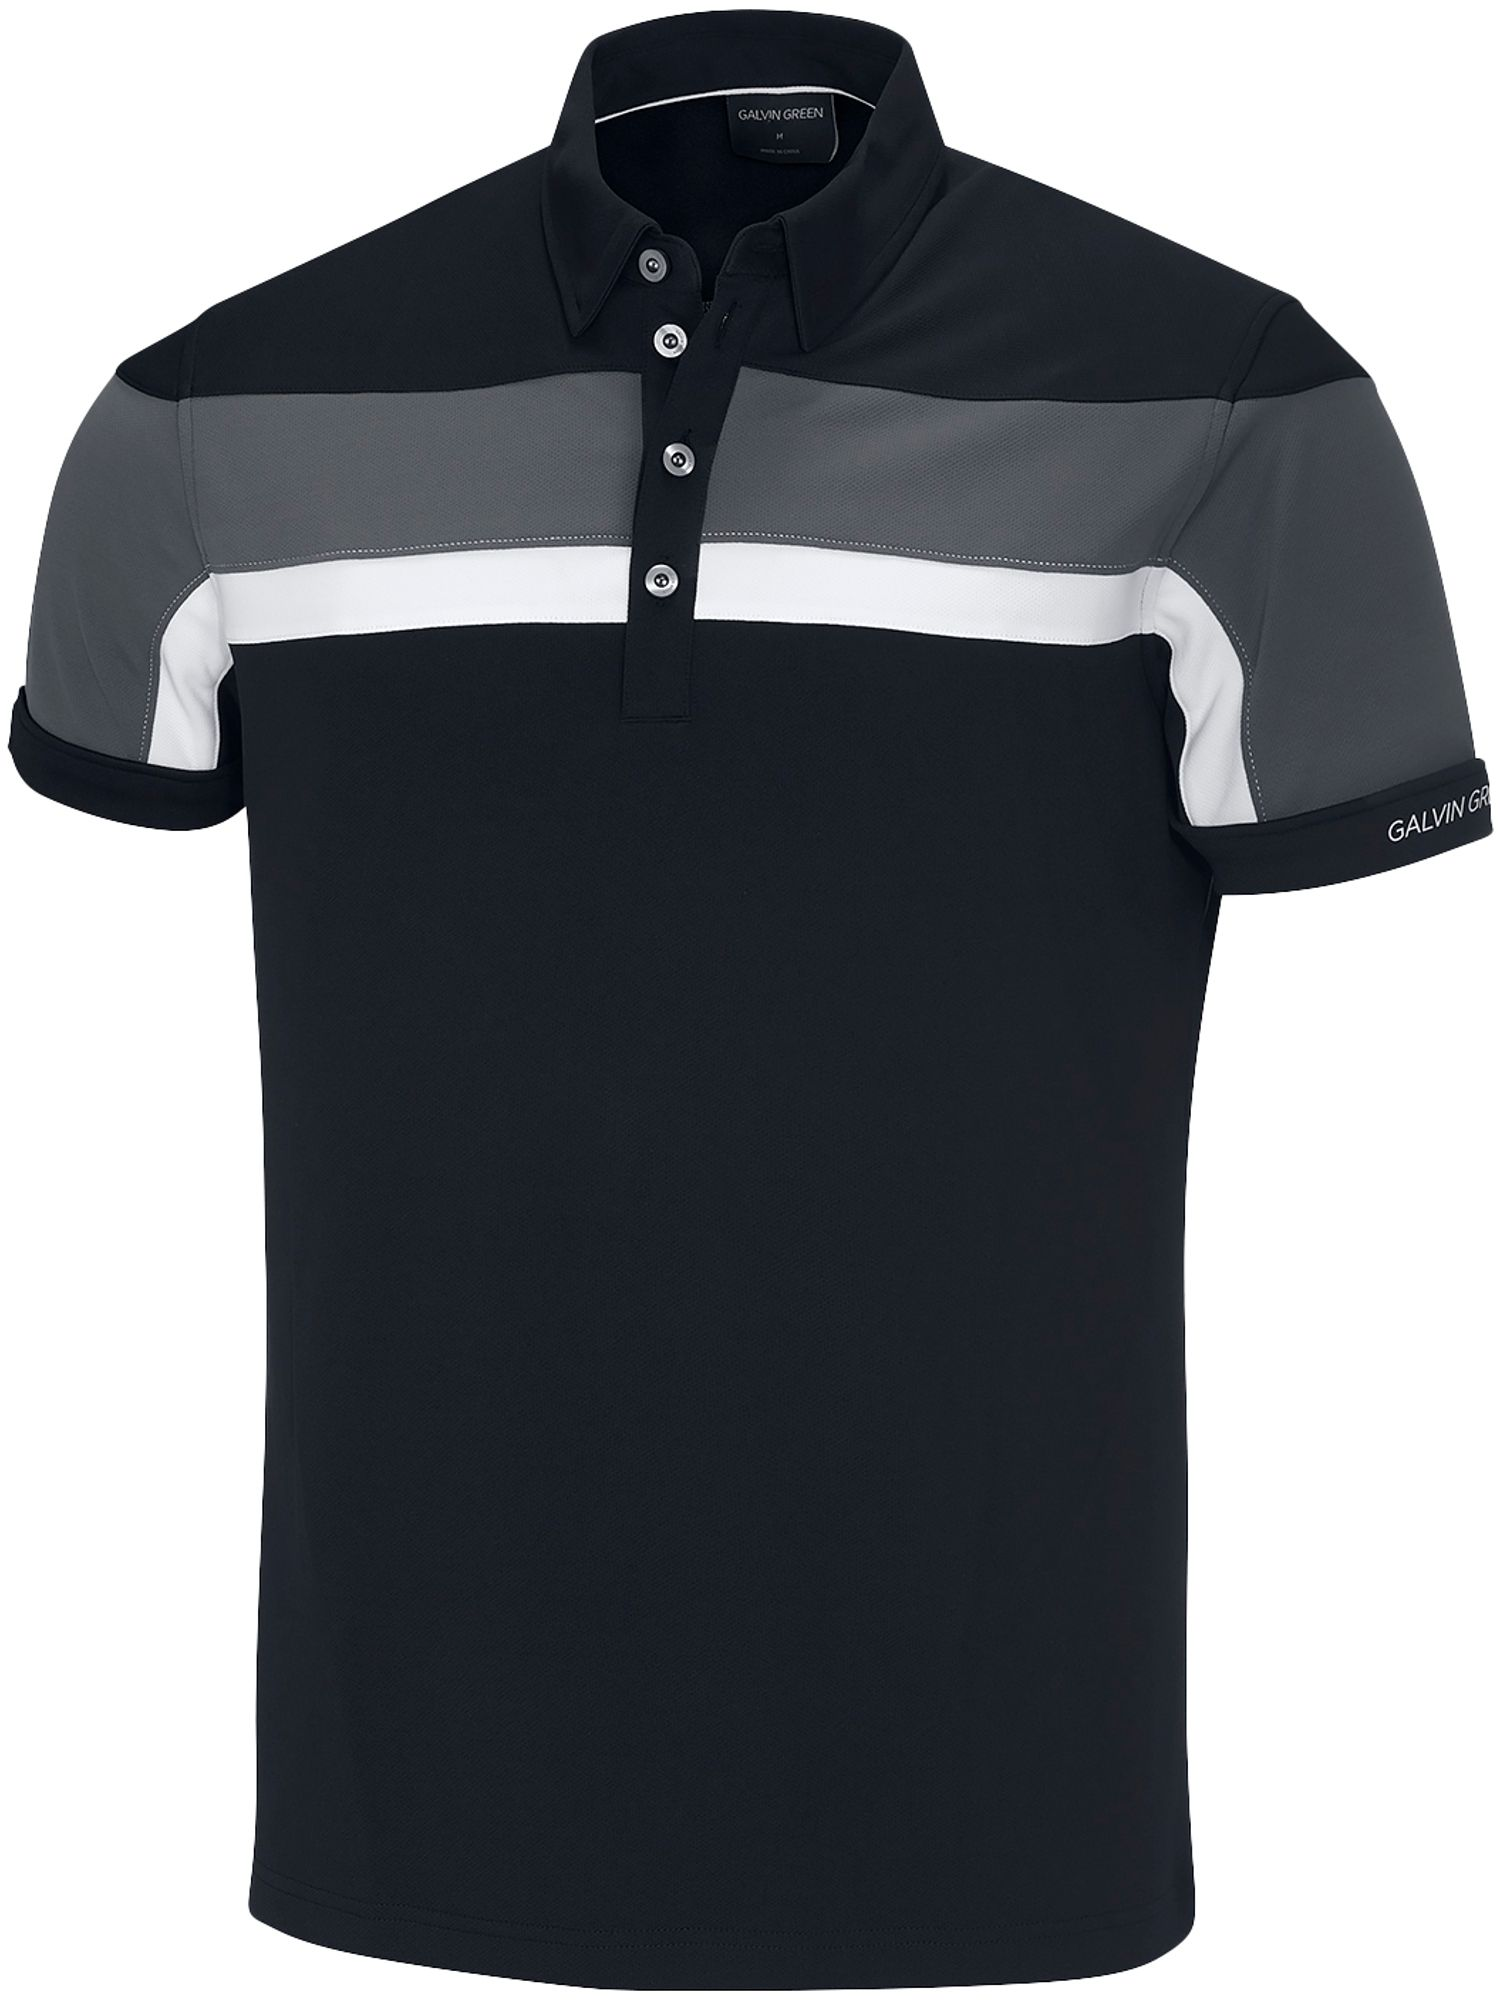 Men's Galvin Green Mitchell Ventil8 Polo, Black